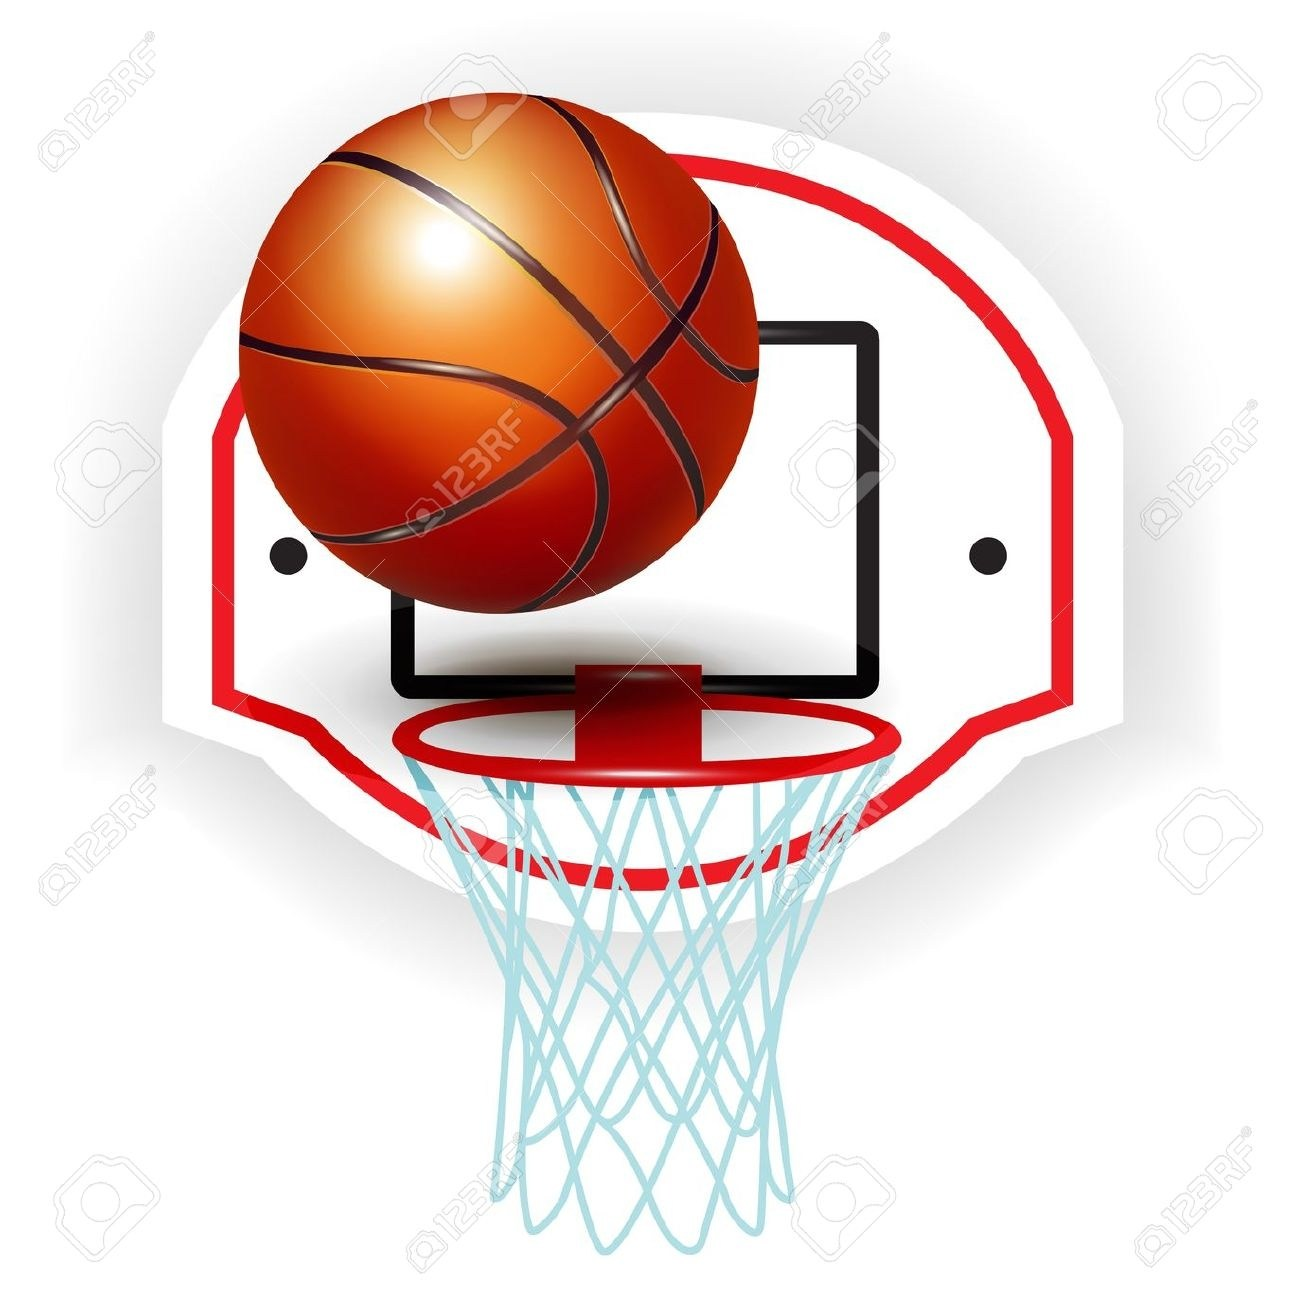 Basketball ring clipart png 4 » Clipart Portal.